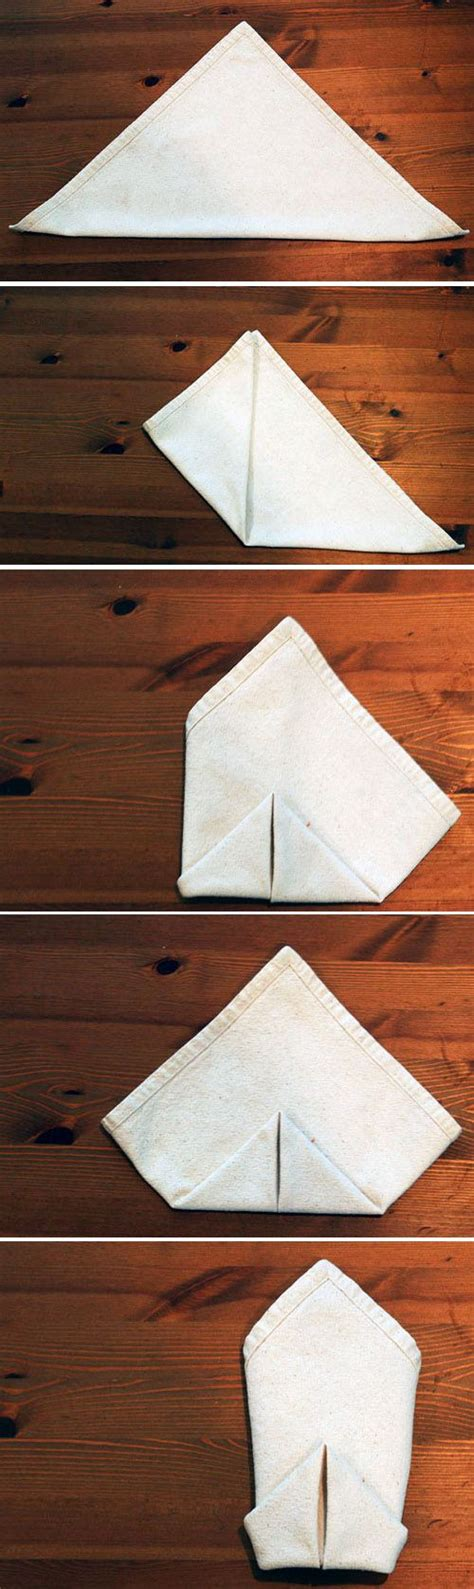 Creative Ways To Fold Paper Napkins - modern ways to fold napkins 陂erve陋ele nunta